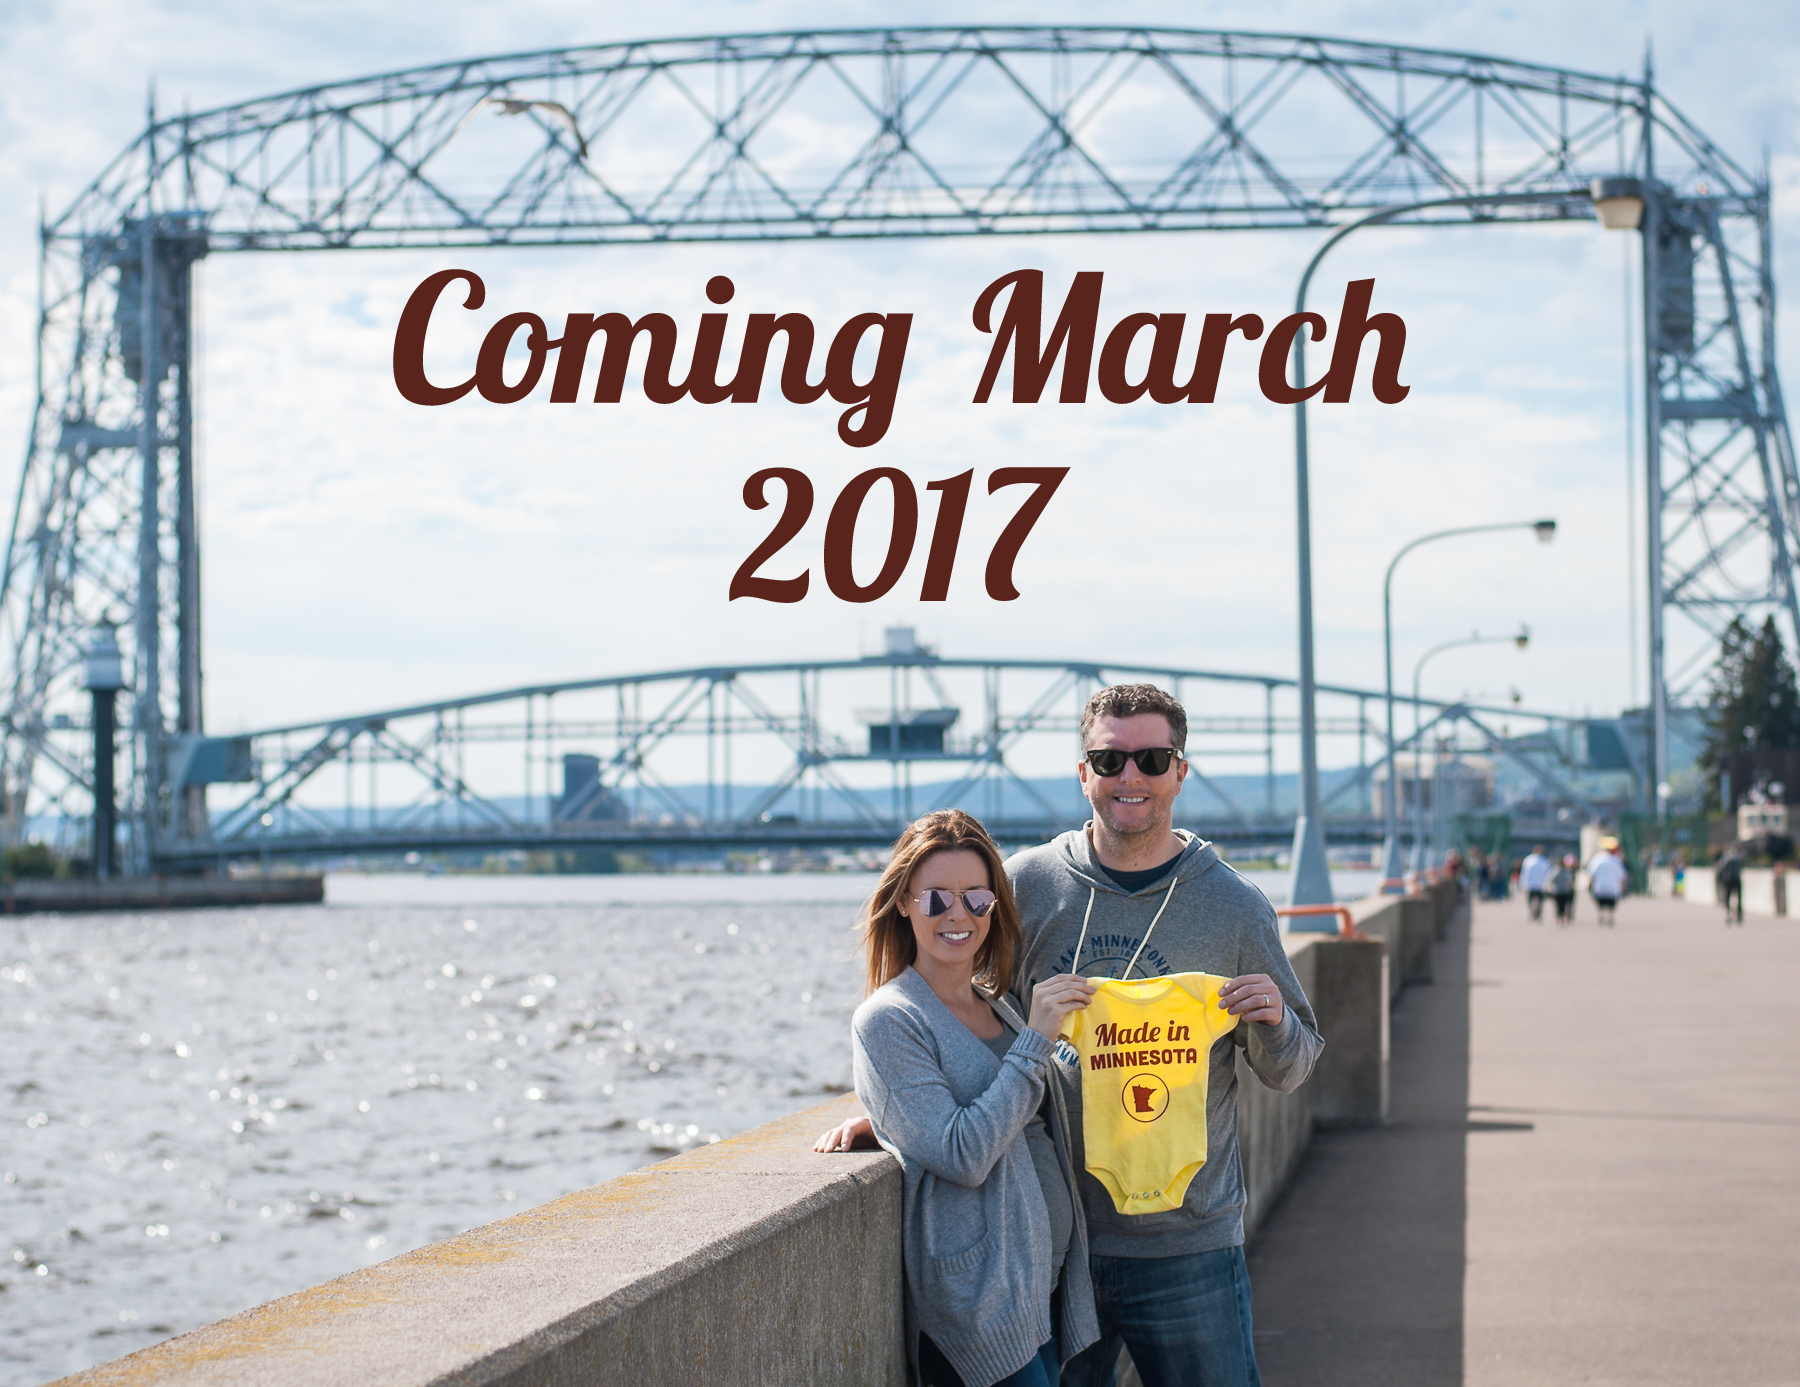 Made in Minnesota baby announcement